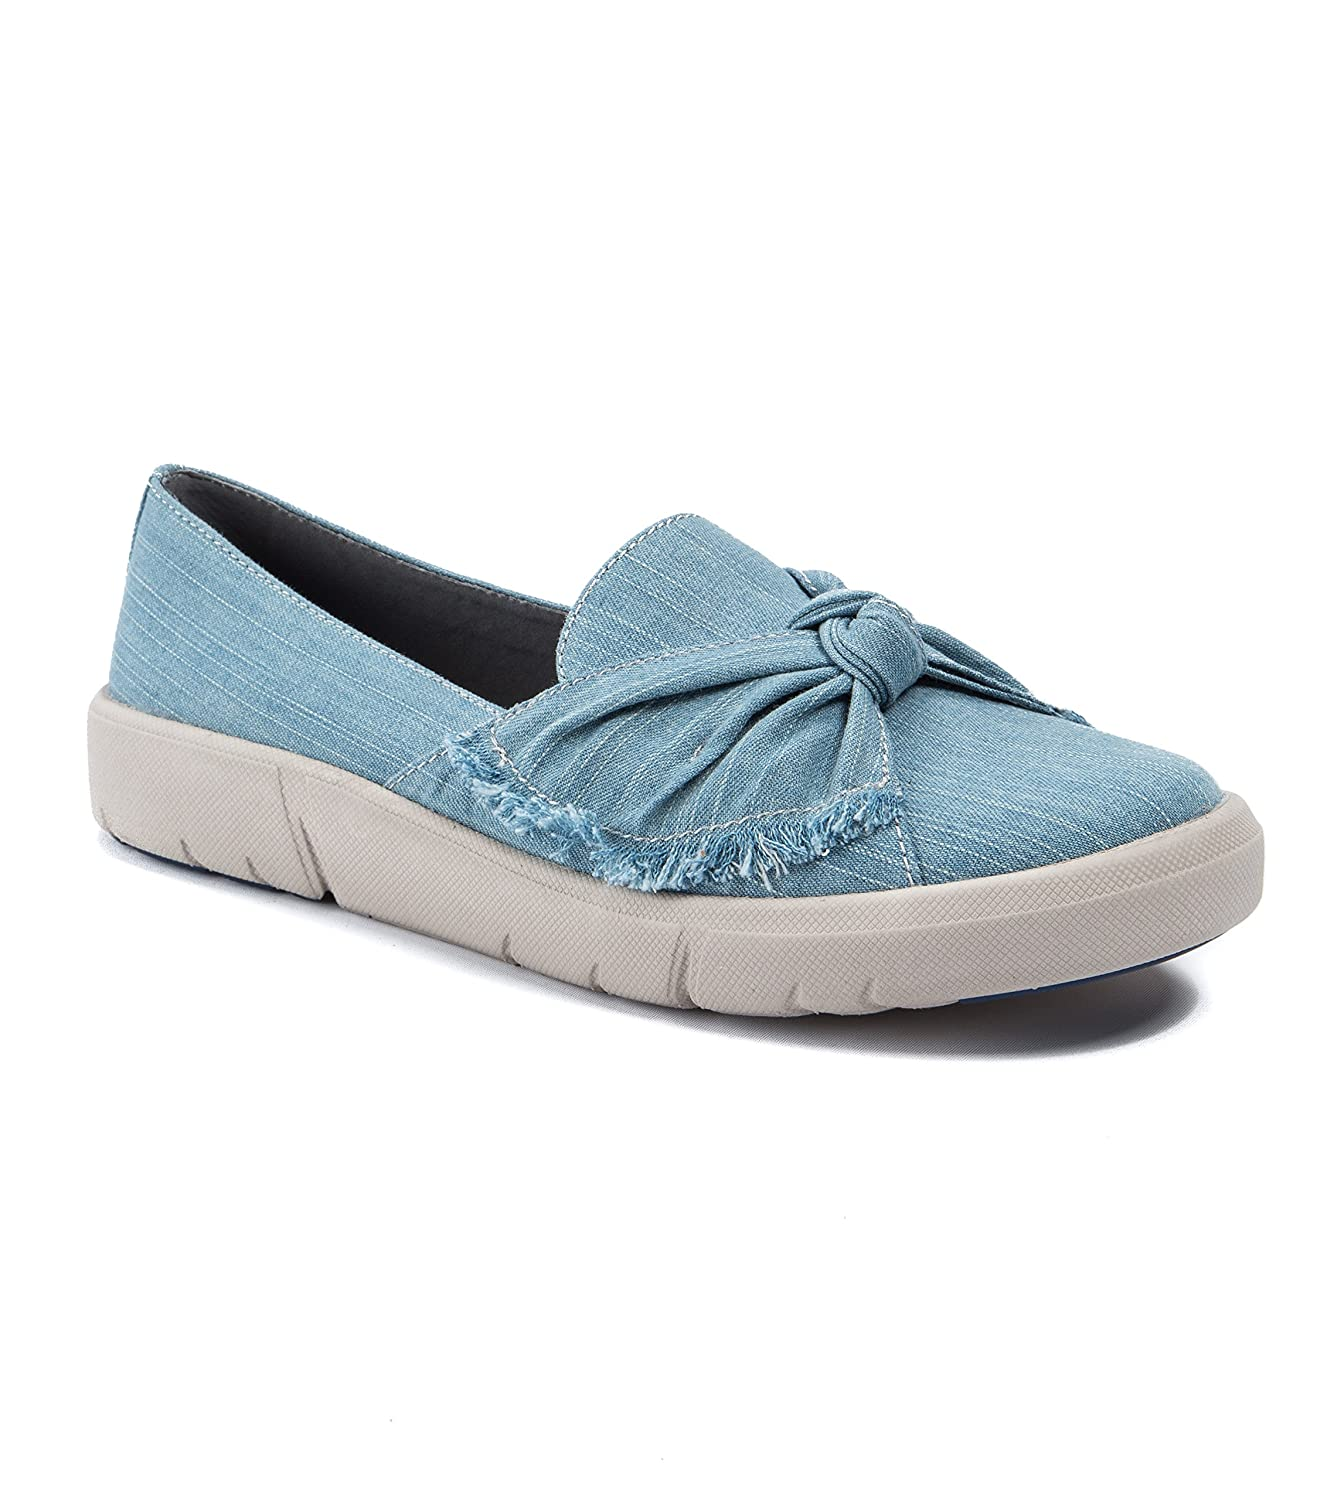 BareTraps Britta Damens's Denim Flats & Oxfords Washed Denim Damens's Größe 9 M (BT24664) - 138b4c